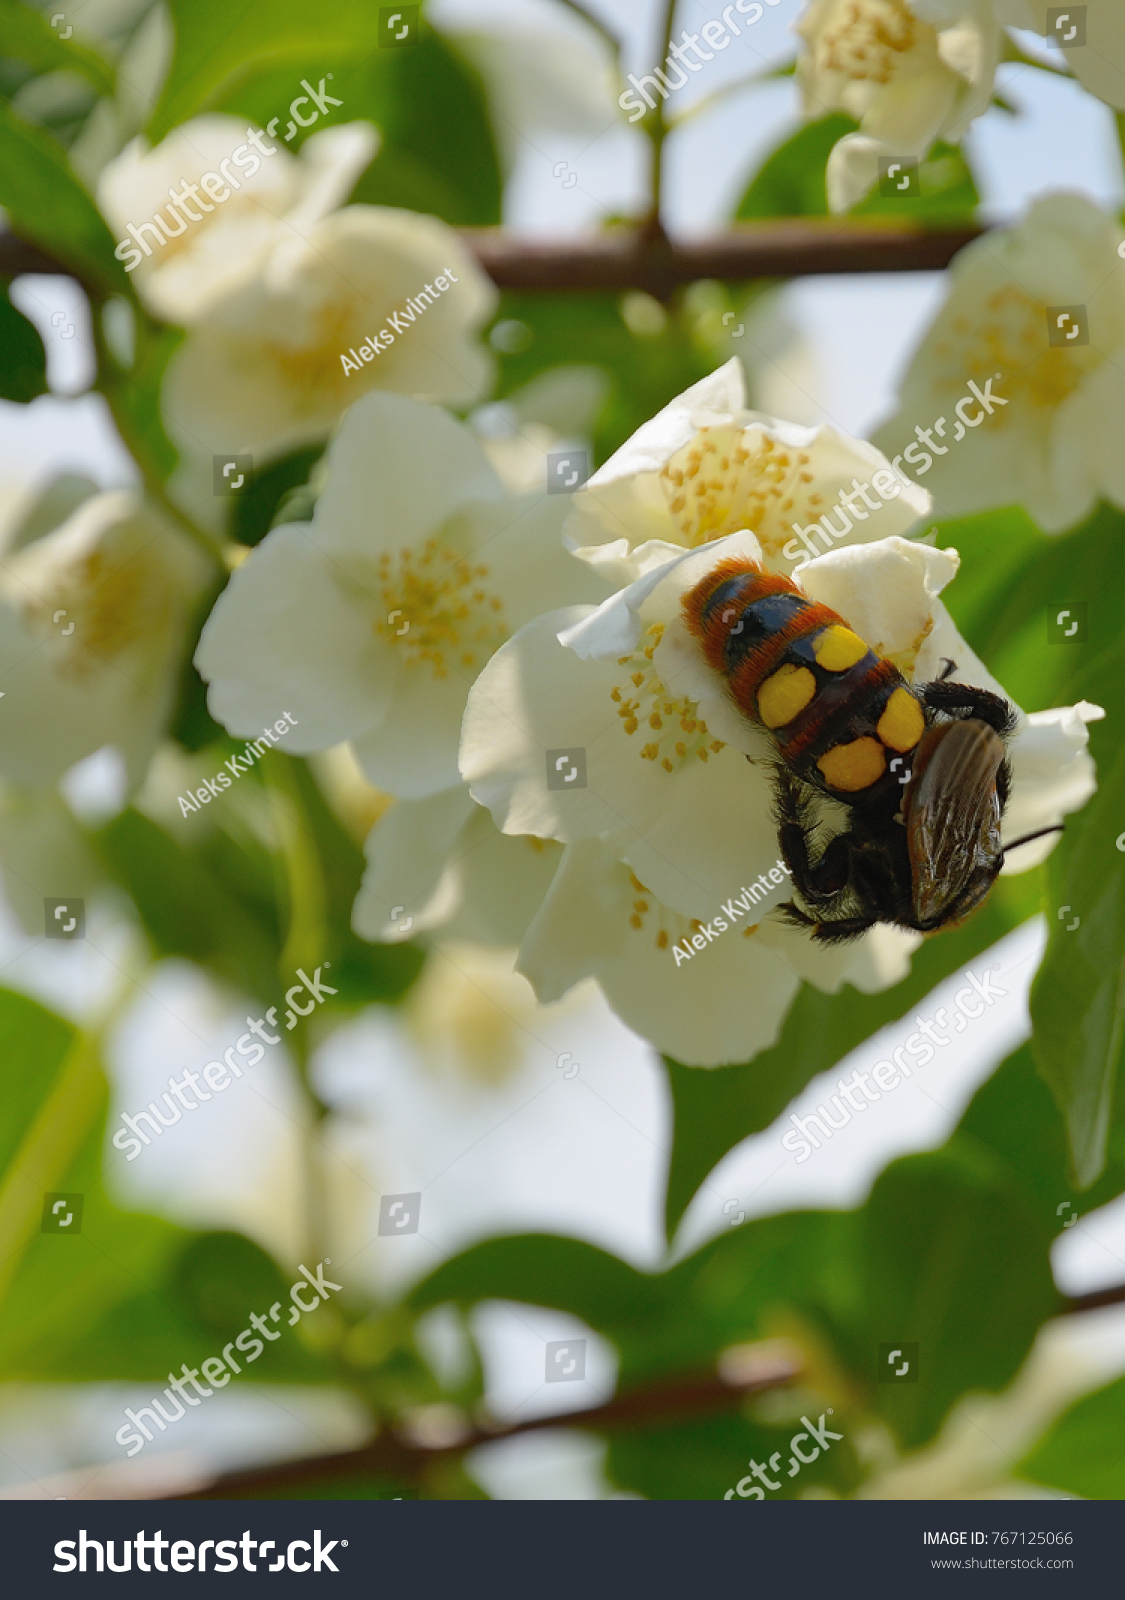 Insect hornet white jasmine flowers close stock photo royalty free insect hornet at white jasmine flowers close large hornet with bright yellow and black spots izmirmasajfo